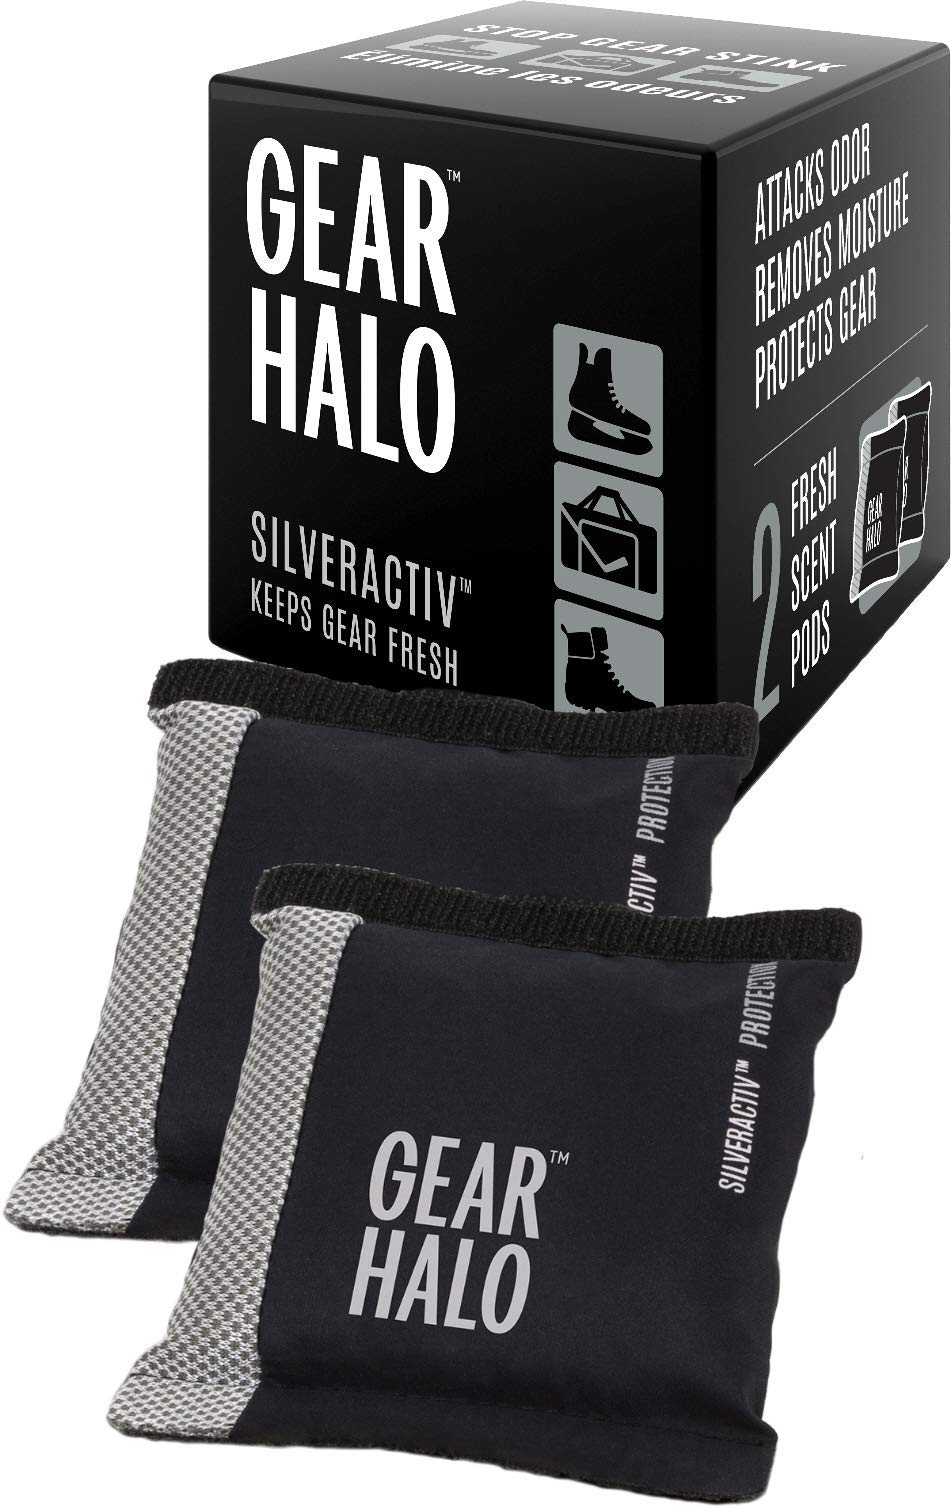 Gearhalo Deodorizer Pods - Stops the Stink!